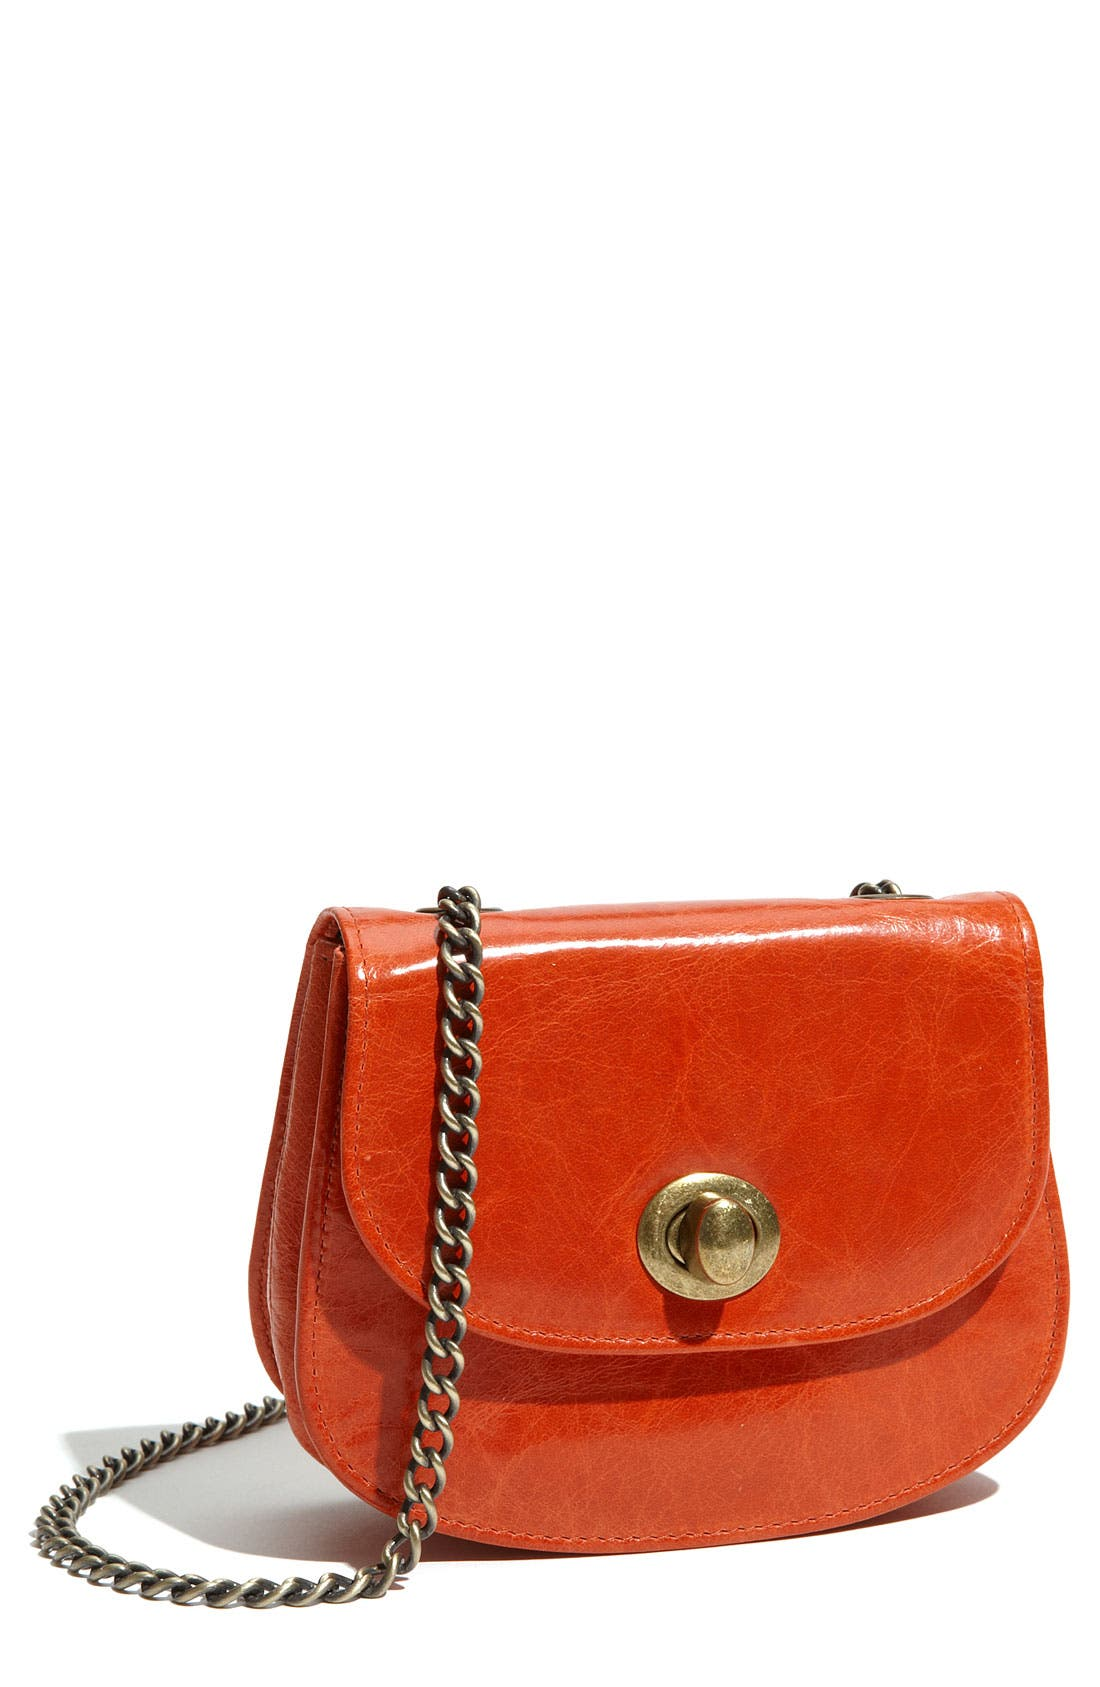 Main Image - Hobo 'Holiday Vintage Aster' Chain Strap Mini Bag